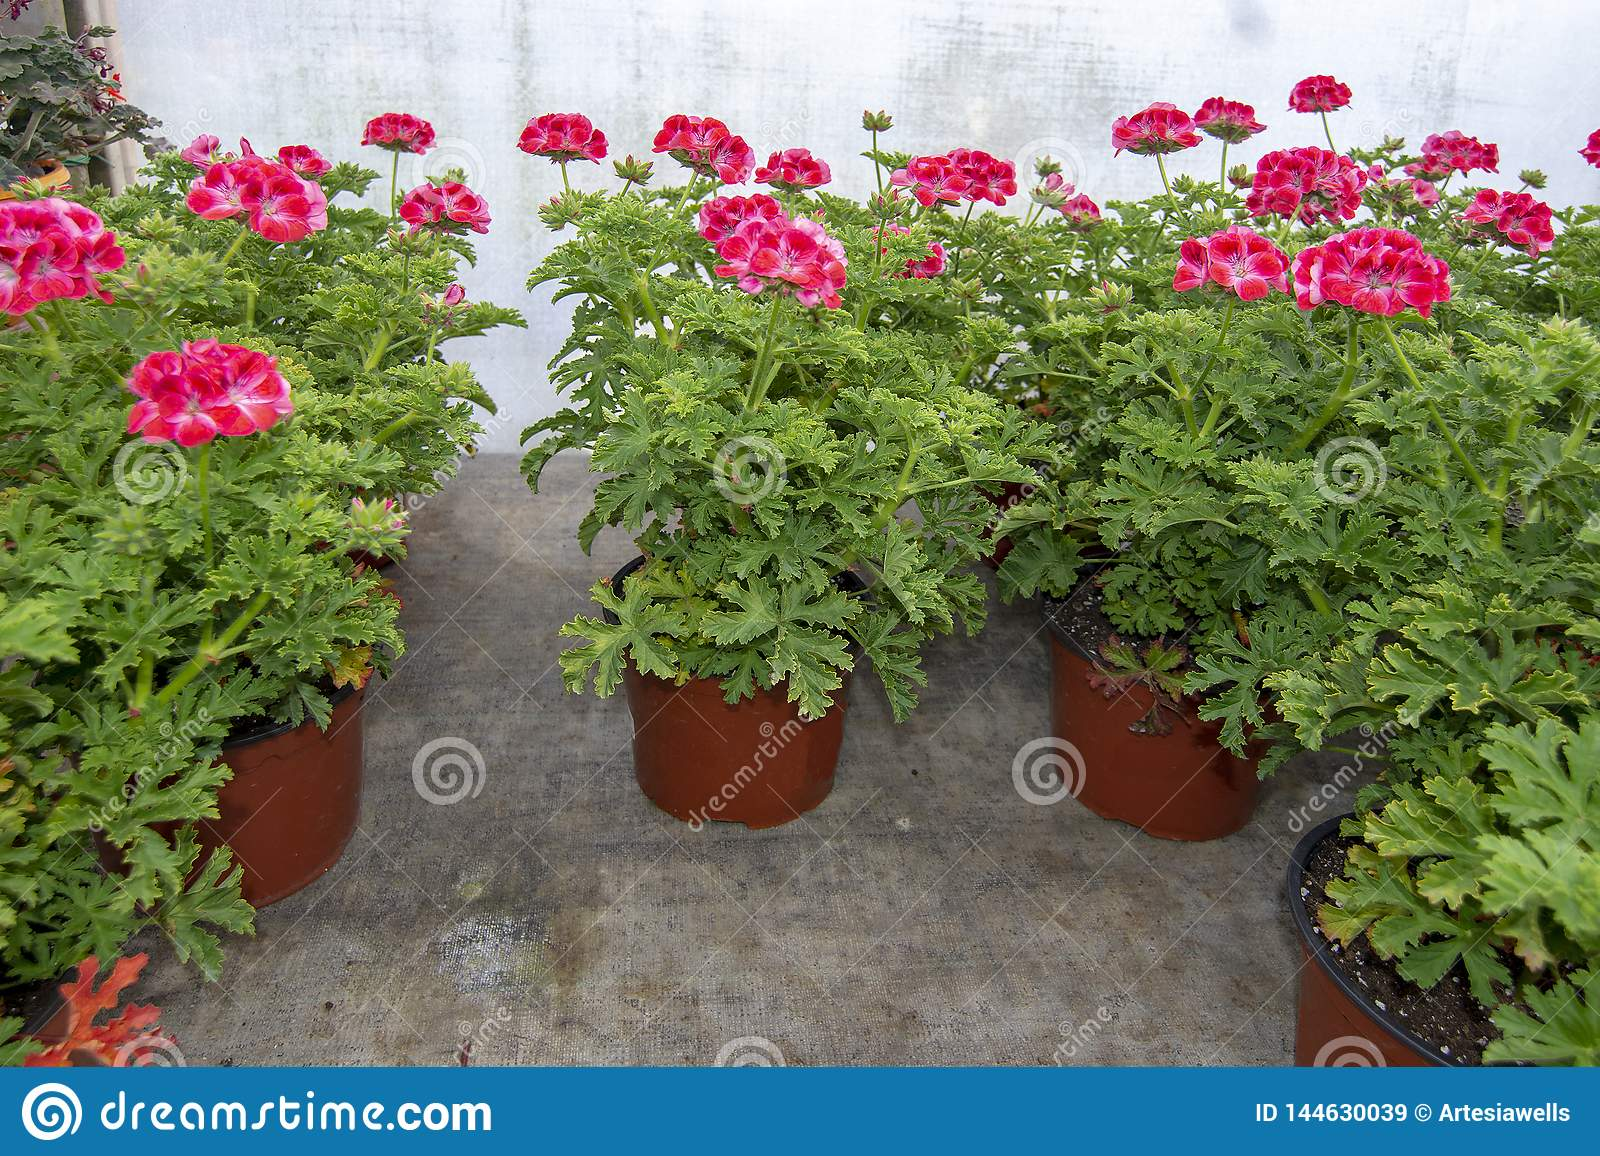 Pink geranium flowers in pots